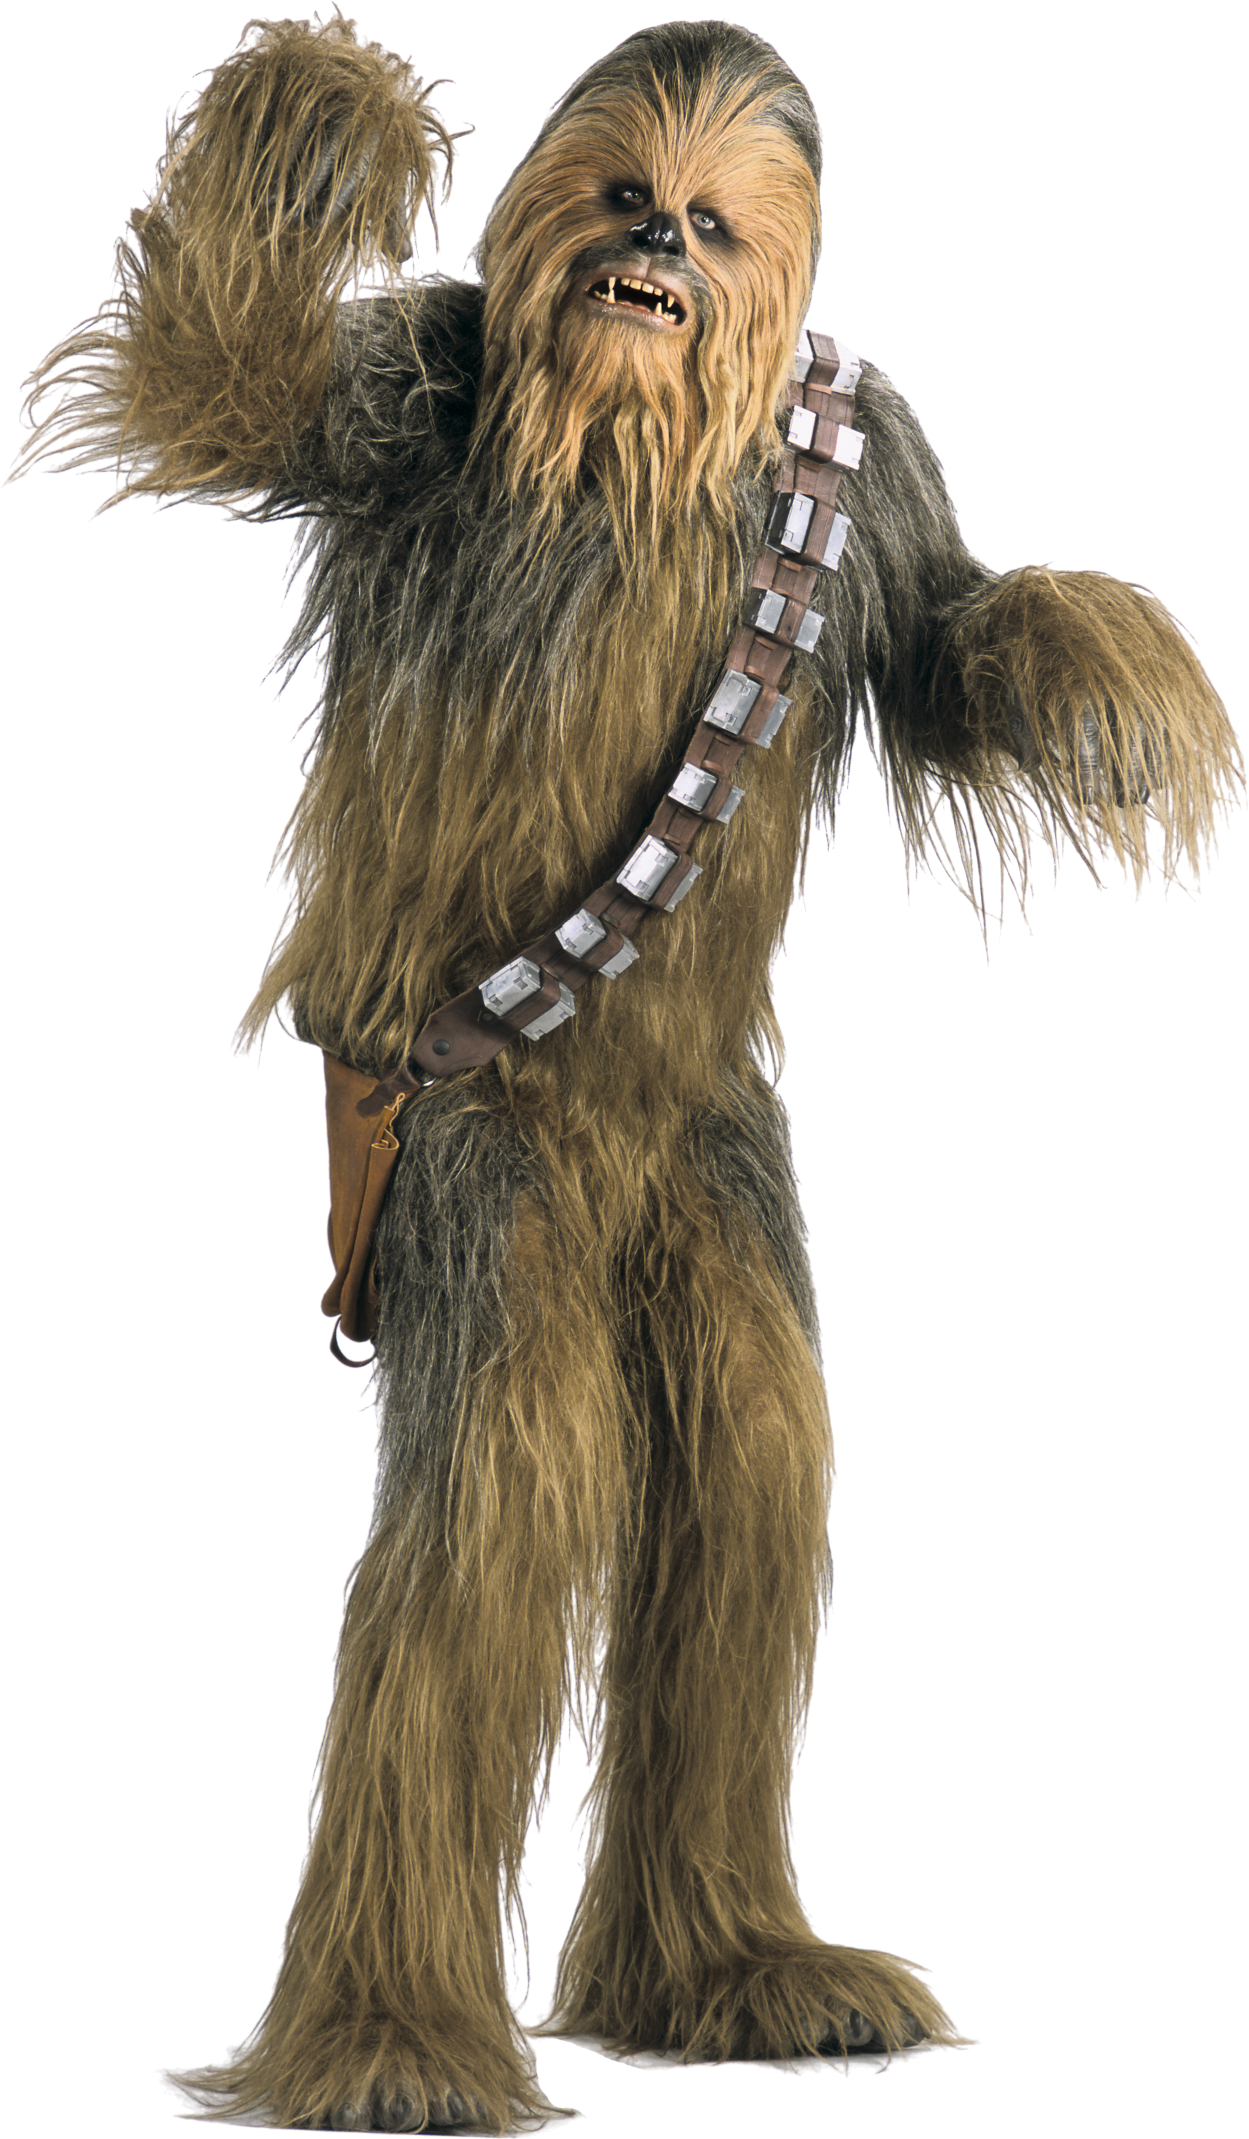 clip free Chewbacca transparent. Png image mart